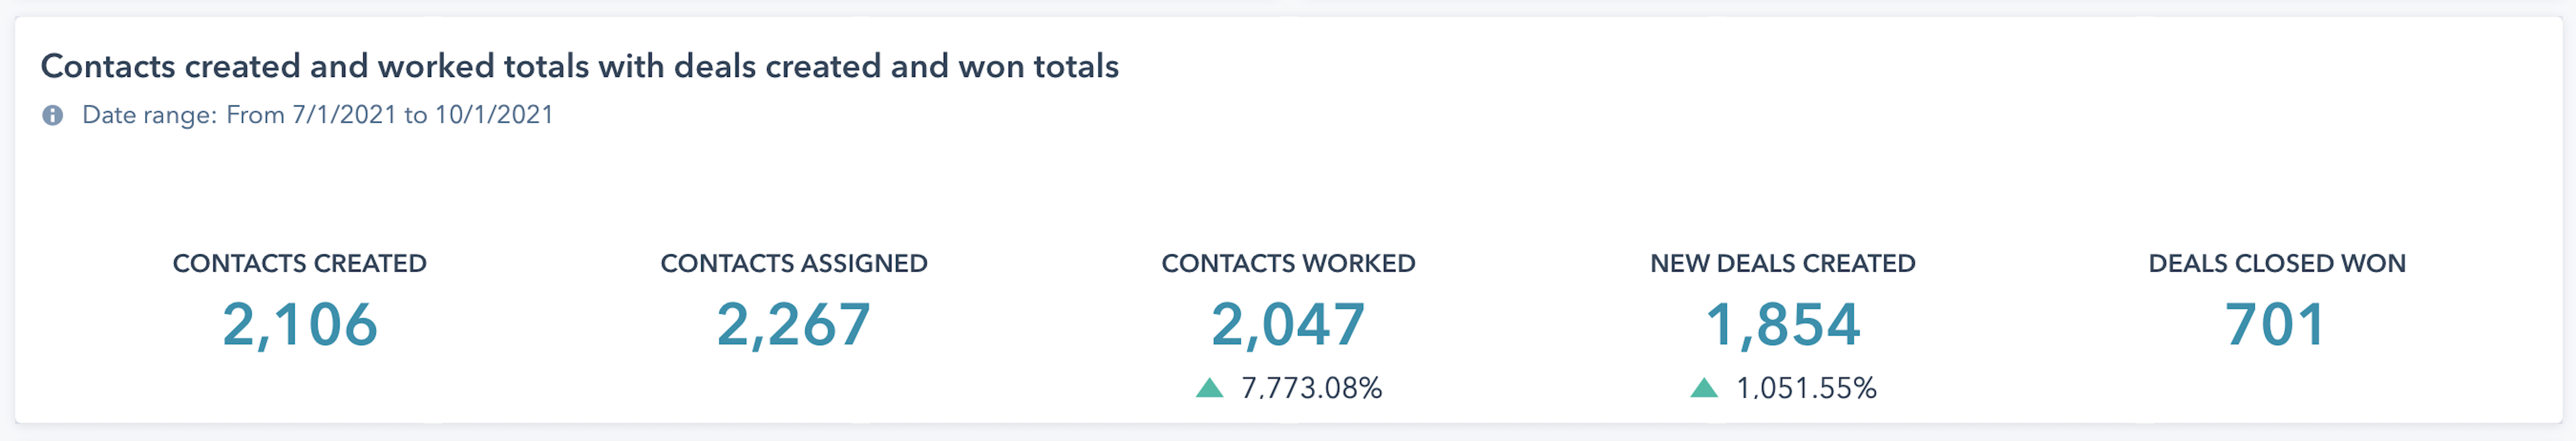 HubSpot Reports - Contacts and Deals Worked